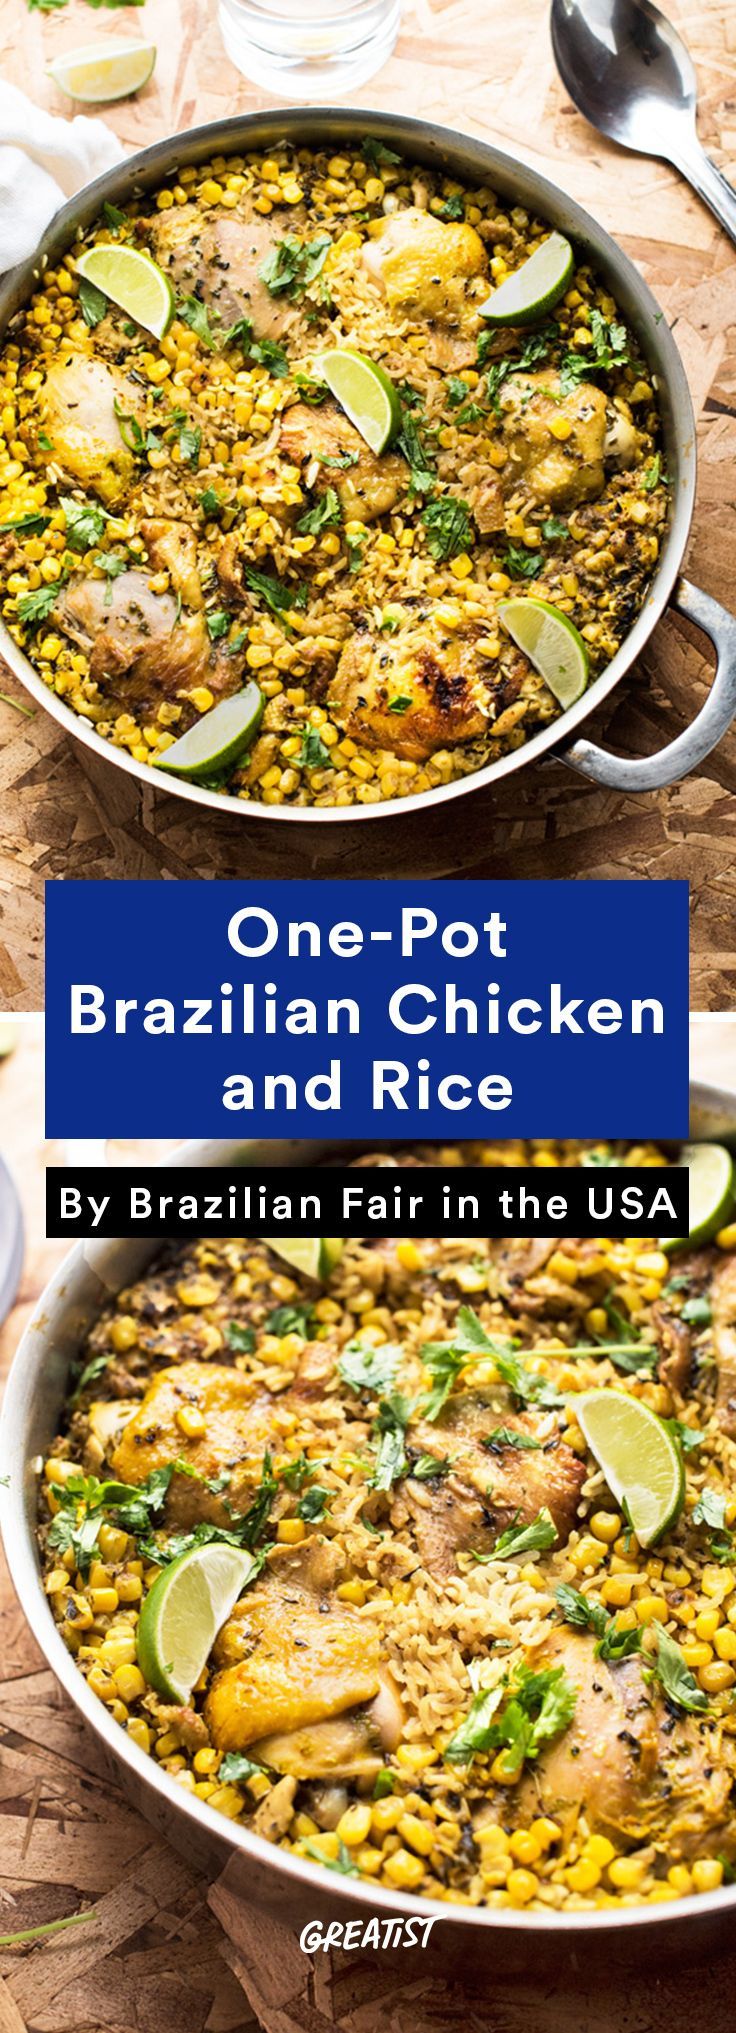 3. One-Pot Brazilian Chicken and Rice #healthy #Brazilian #recipes http://greatist.com/eat/brazilian-recipes-that-are-surefire-winners